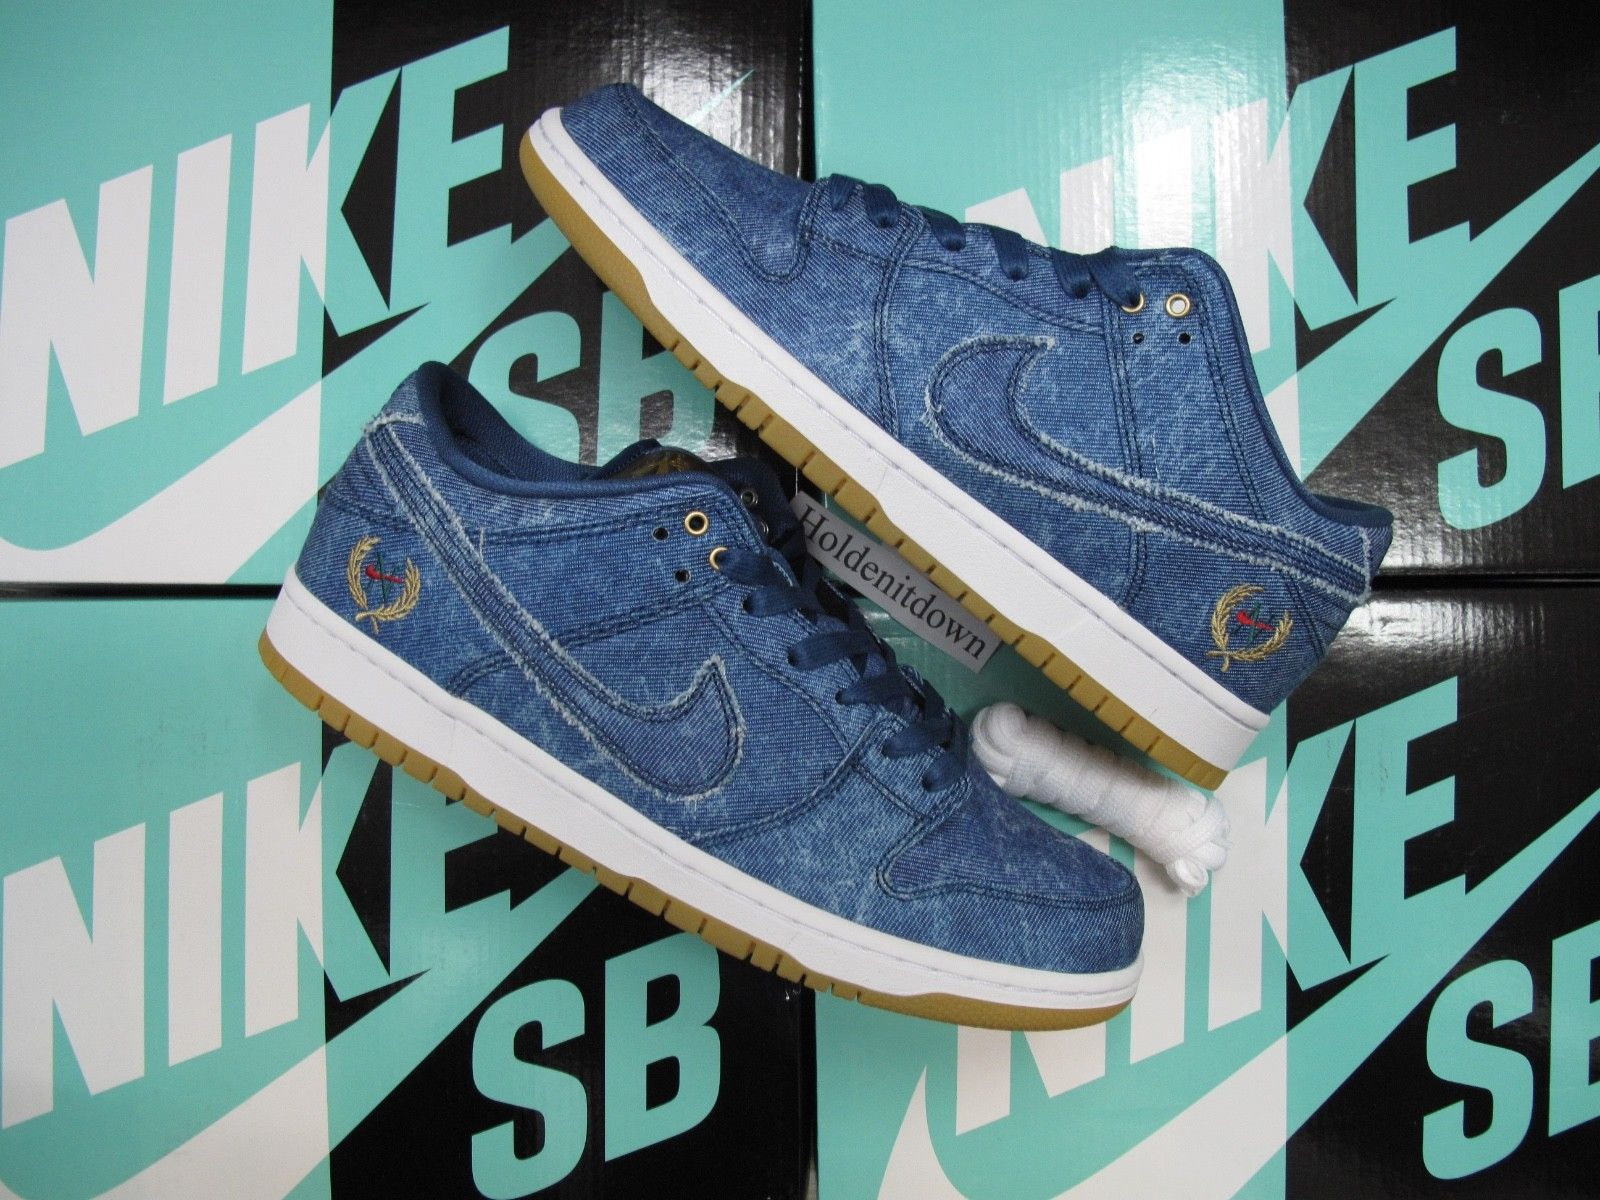 Brand New In Box Nike SB Dunk Low TRD QS Utility Blue 883232 441 Notorious BIG These Will Come The Original With Tissue Paper And